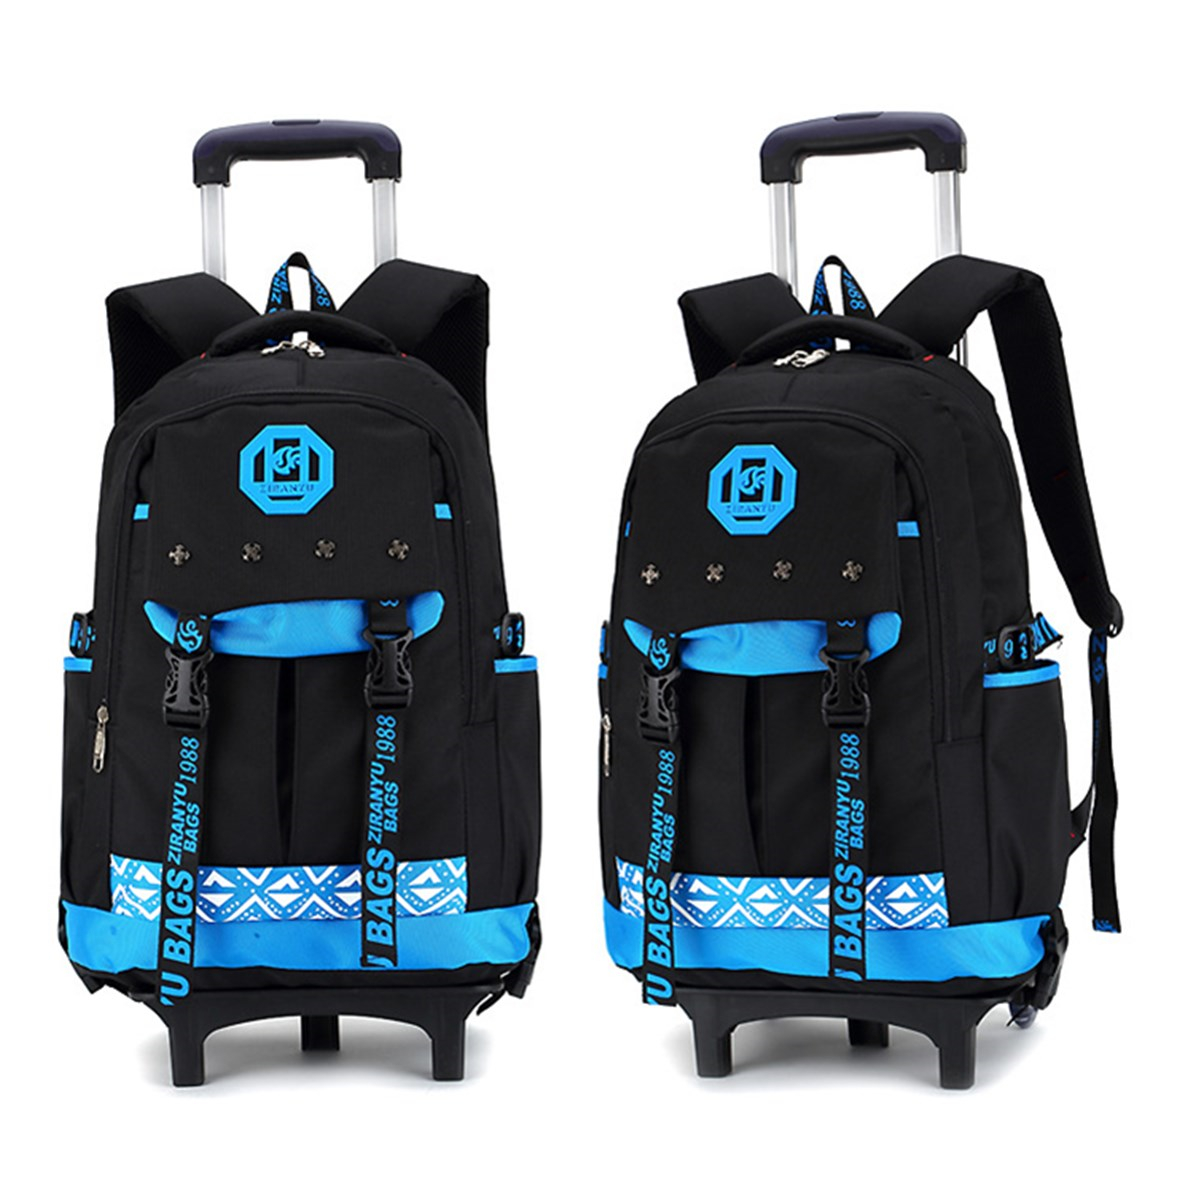 26L Boys Kids Children Travel Luggage School Bag Trolley Backpack With Three Wheels